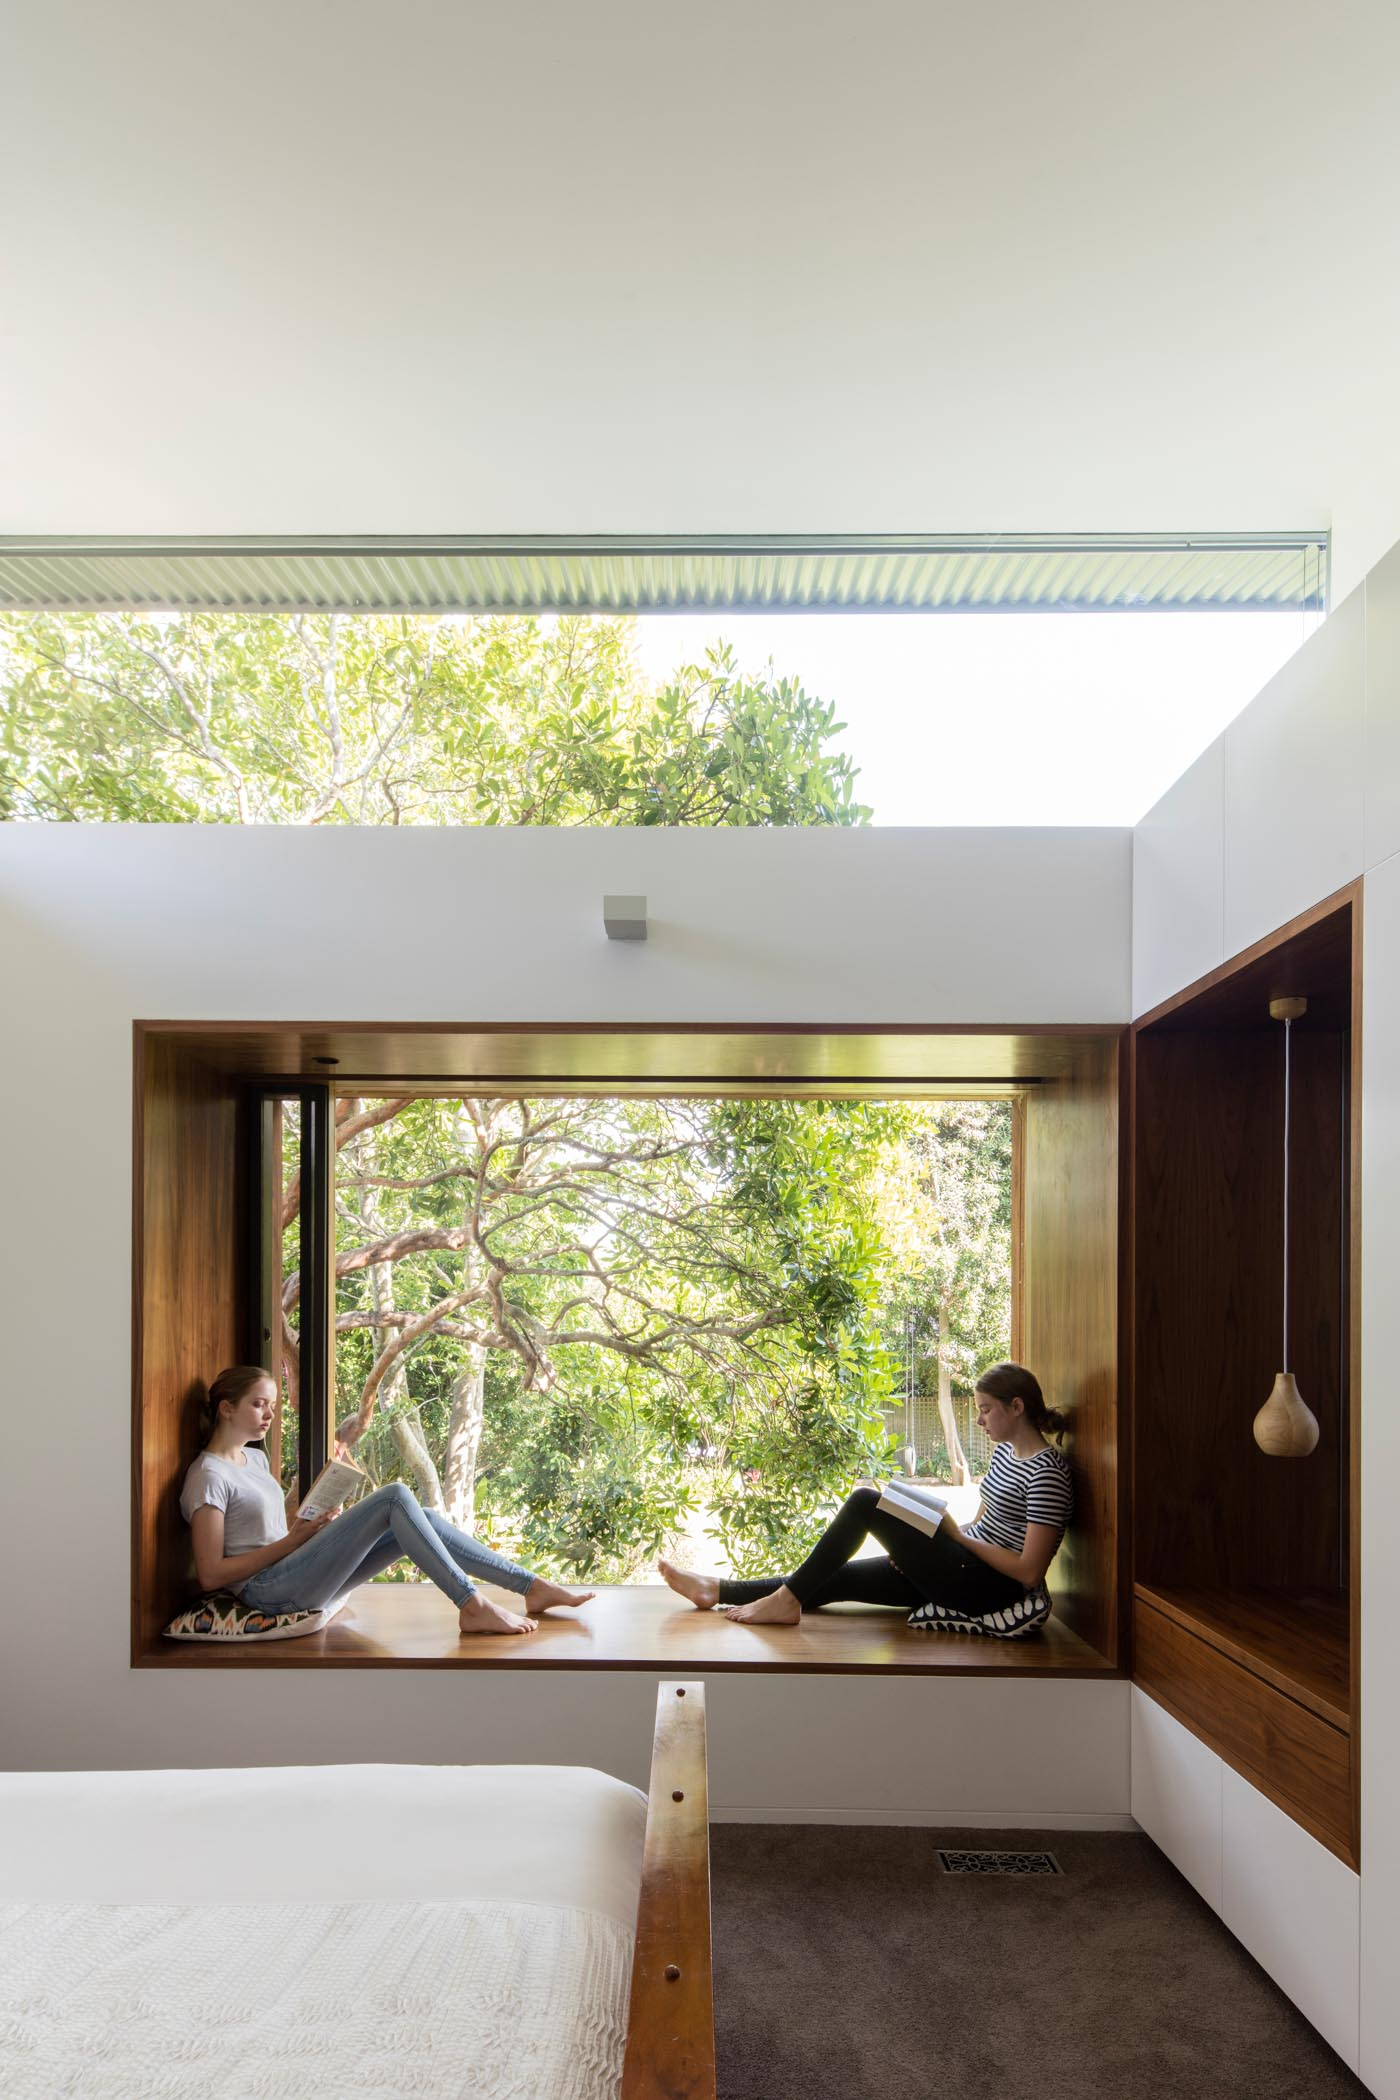 Roseville House by Sydney residential architects Sam Crawford Architects. This modern addition creates a private bedroom with garden out look.